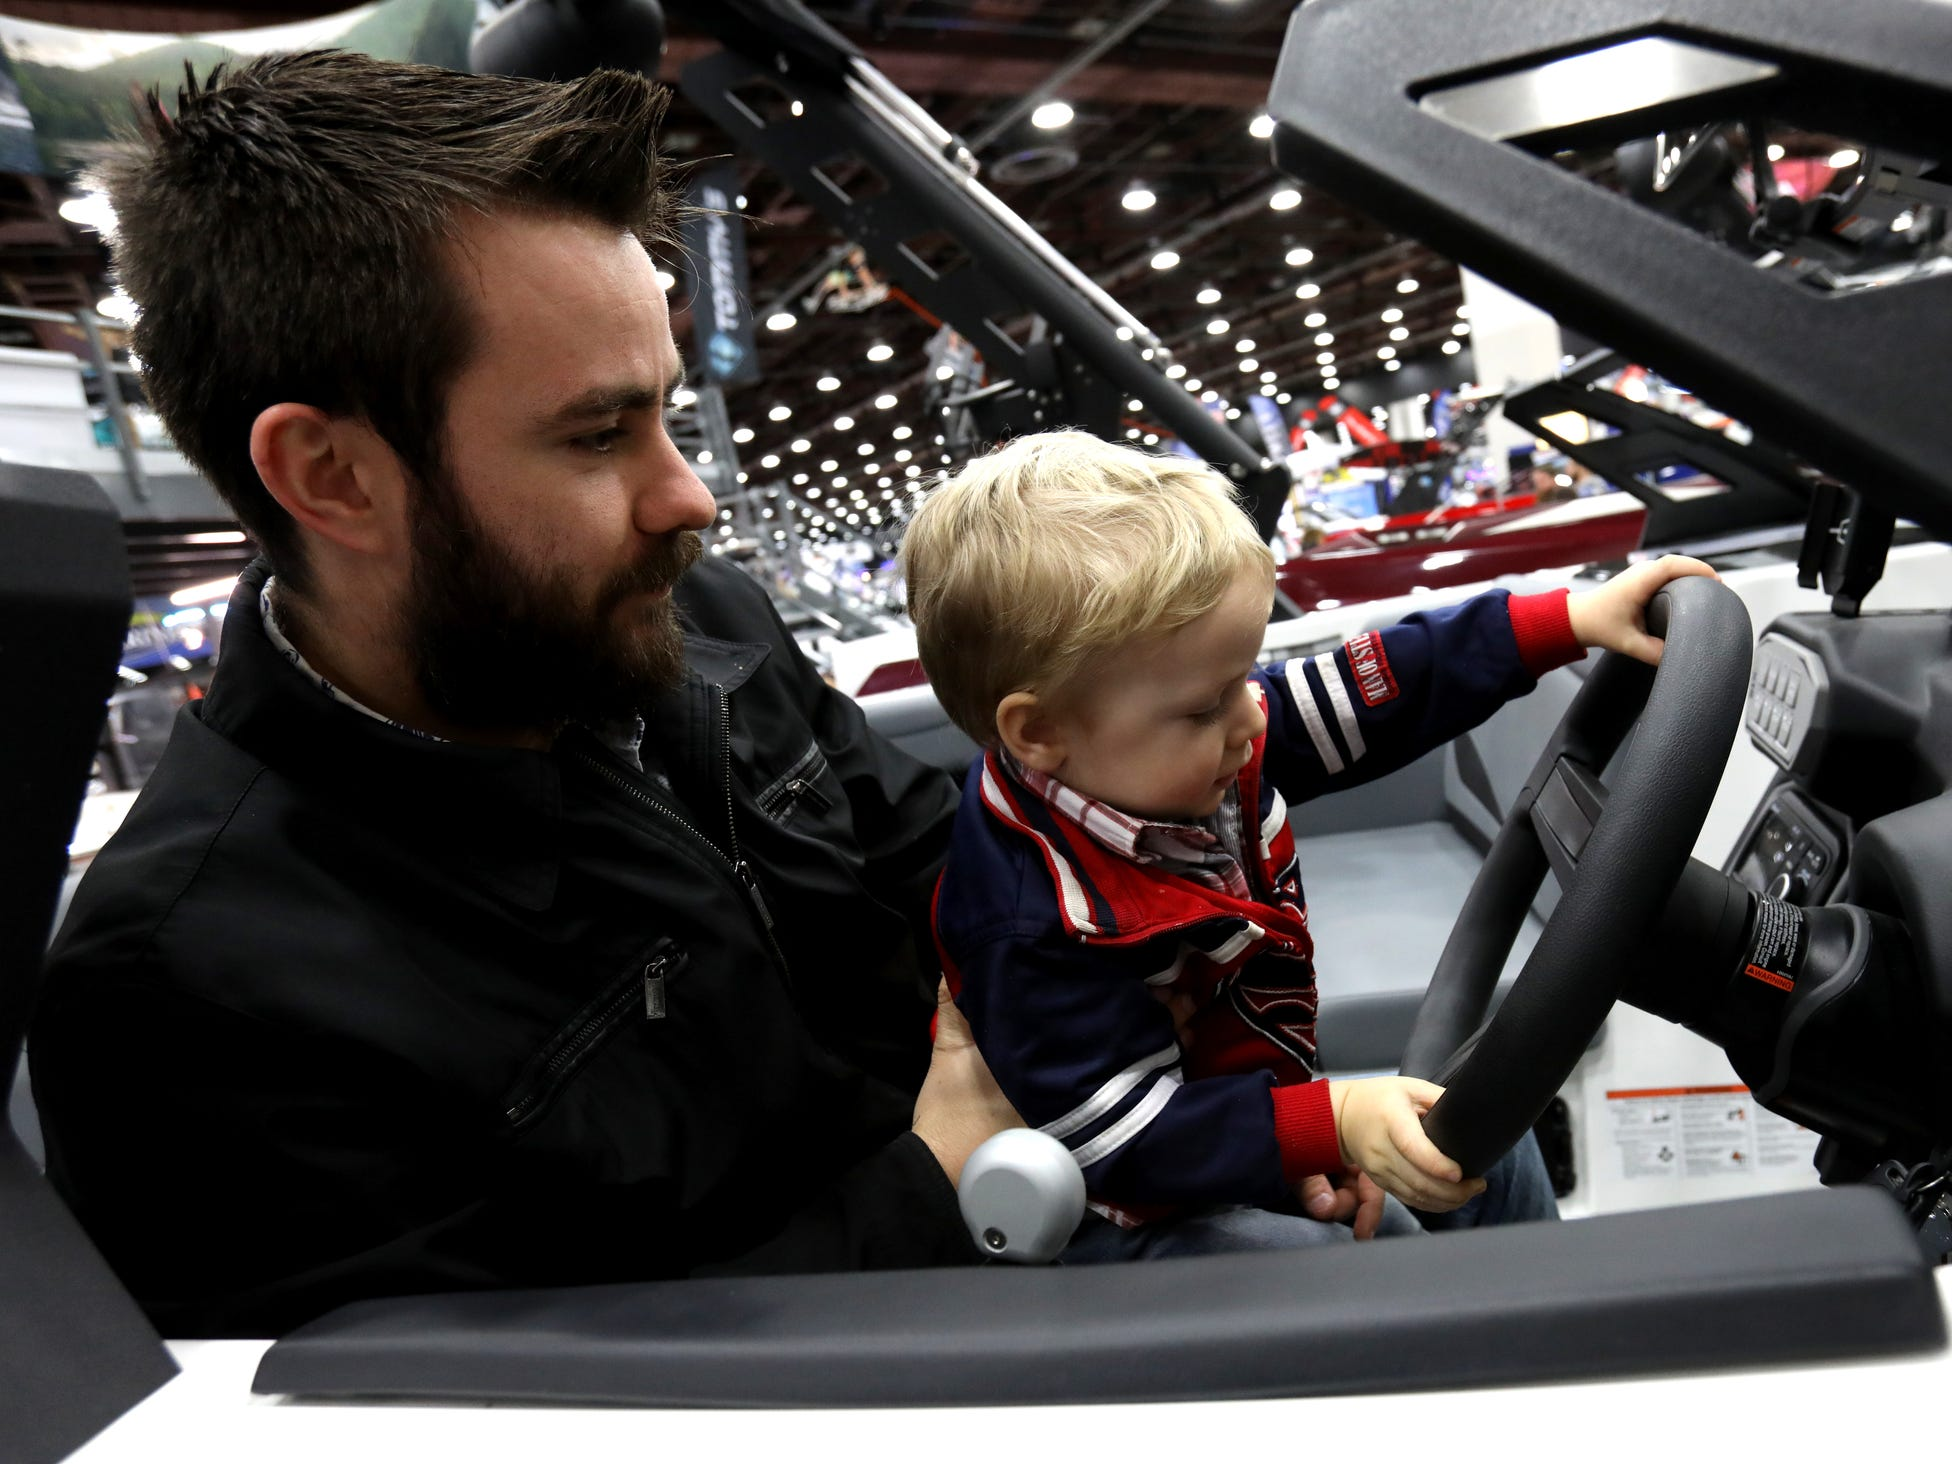 Sam Eis, 26 of Prescott, Ariz., watches his son Jadon Eis, 2 play with a boat at the Tommy's of Detroit display during the Detroit Boat Show at Cobo Center in Detroit on Saturday, February 16, 2019.     .